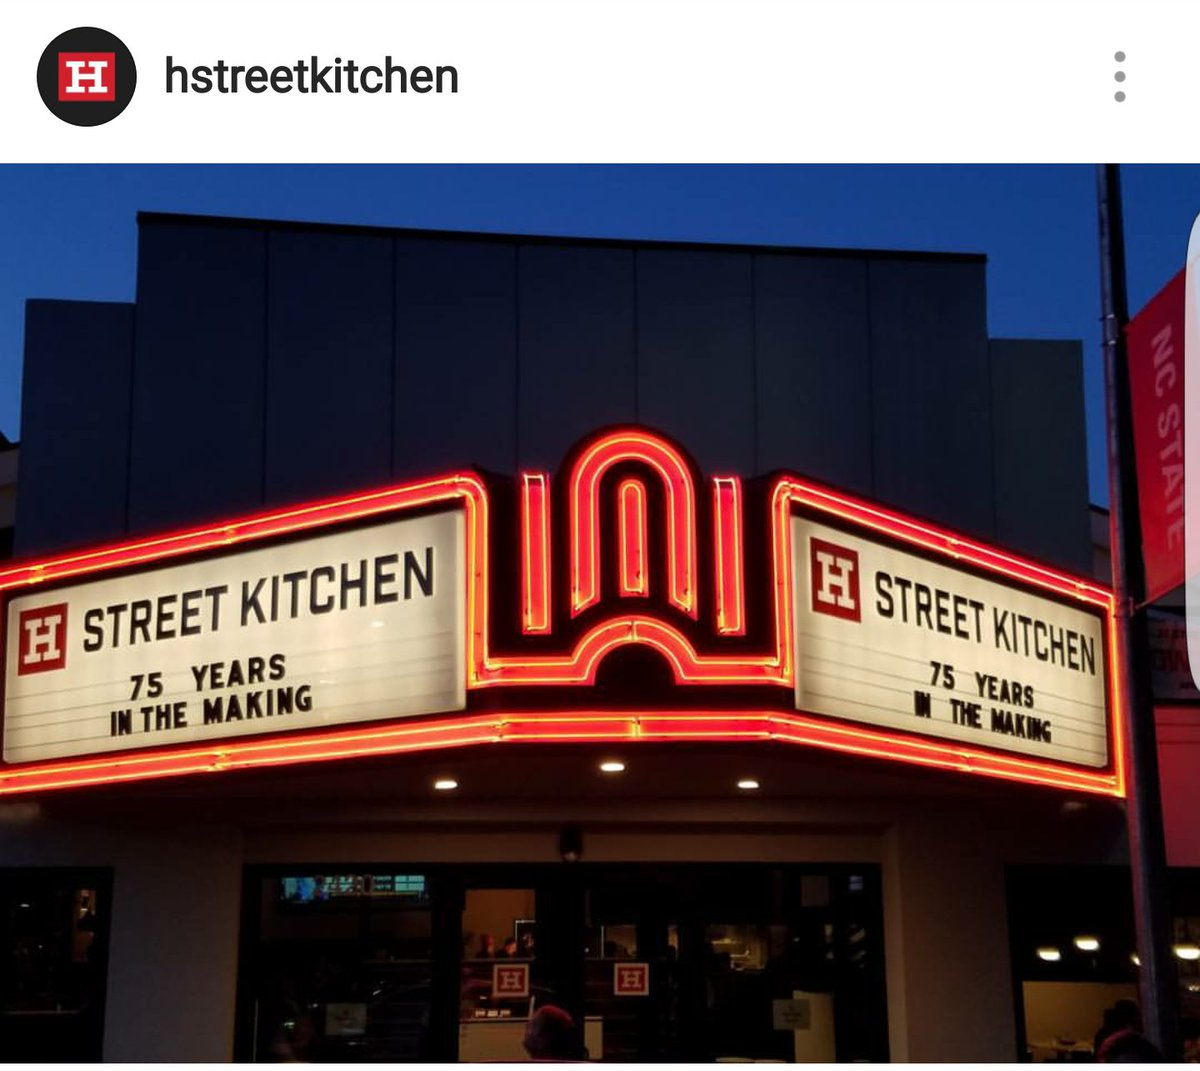 dont you just want a nice easy convenient dinner tonight stop by your local neighborhood kitchen h street kitchenpictwittercomvyyl9jqfd6 - H Street Kitchen